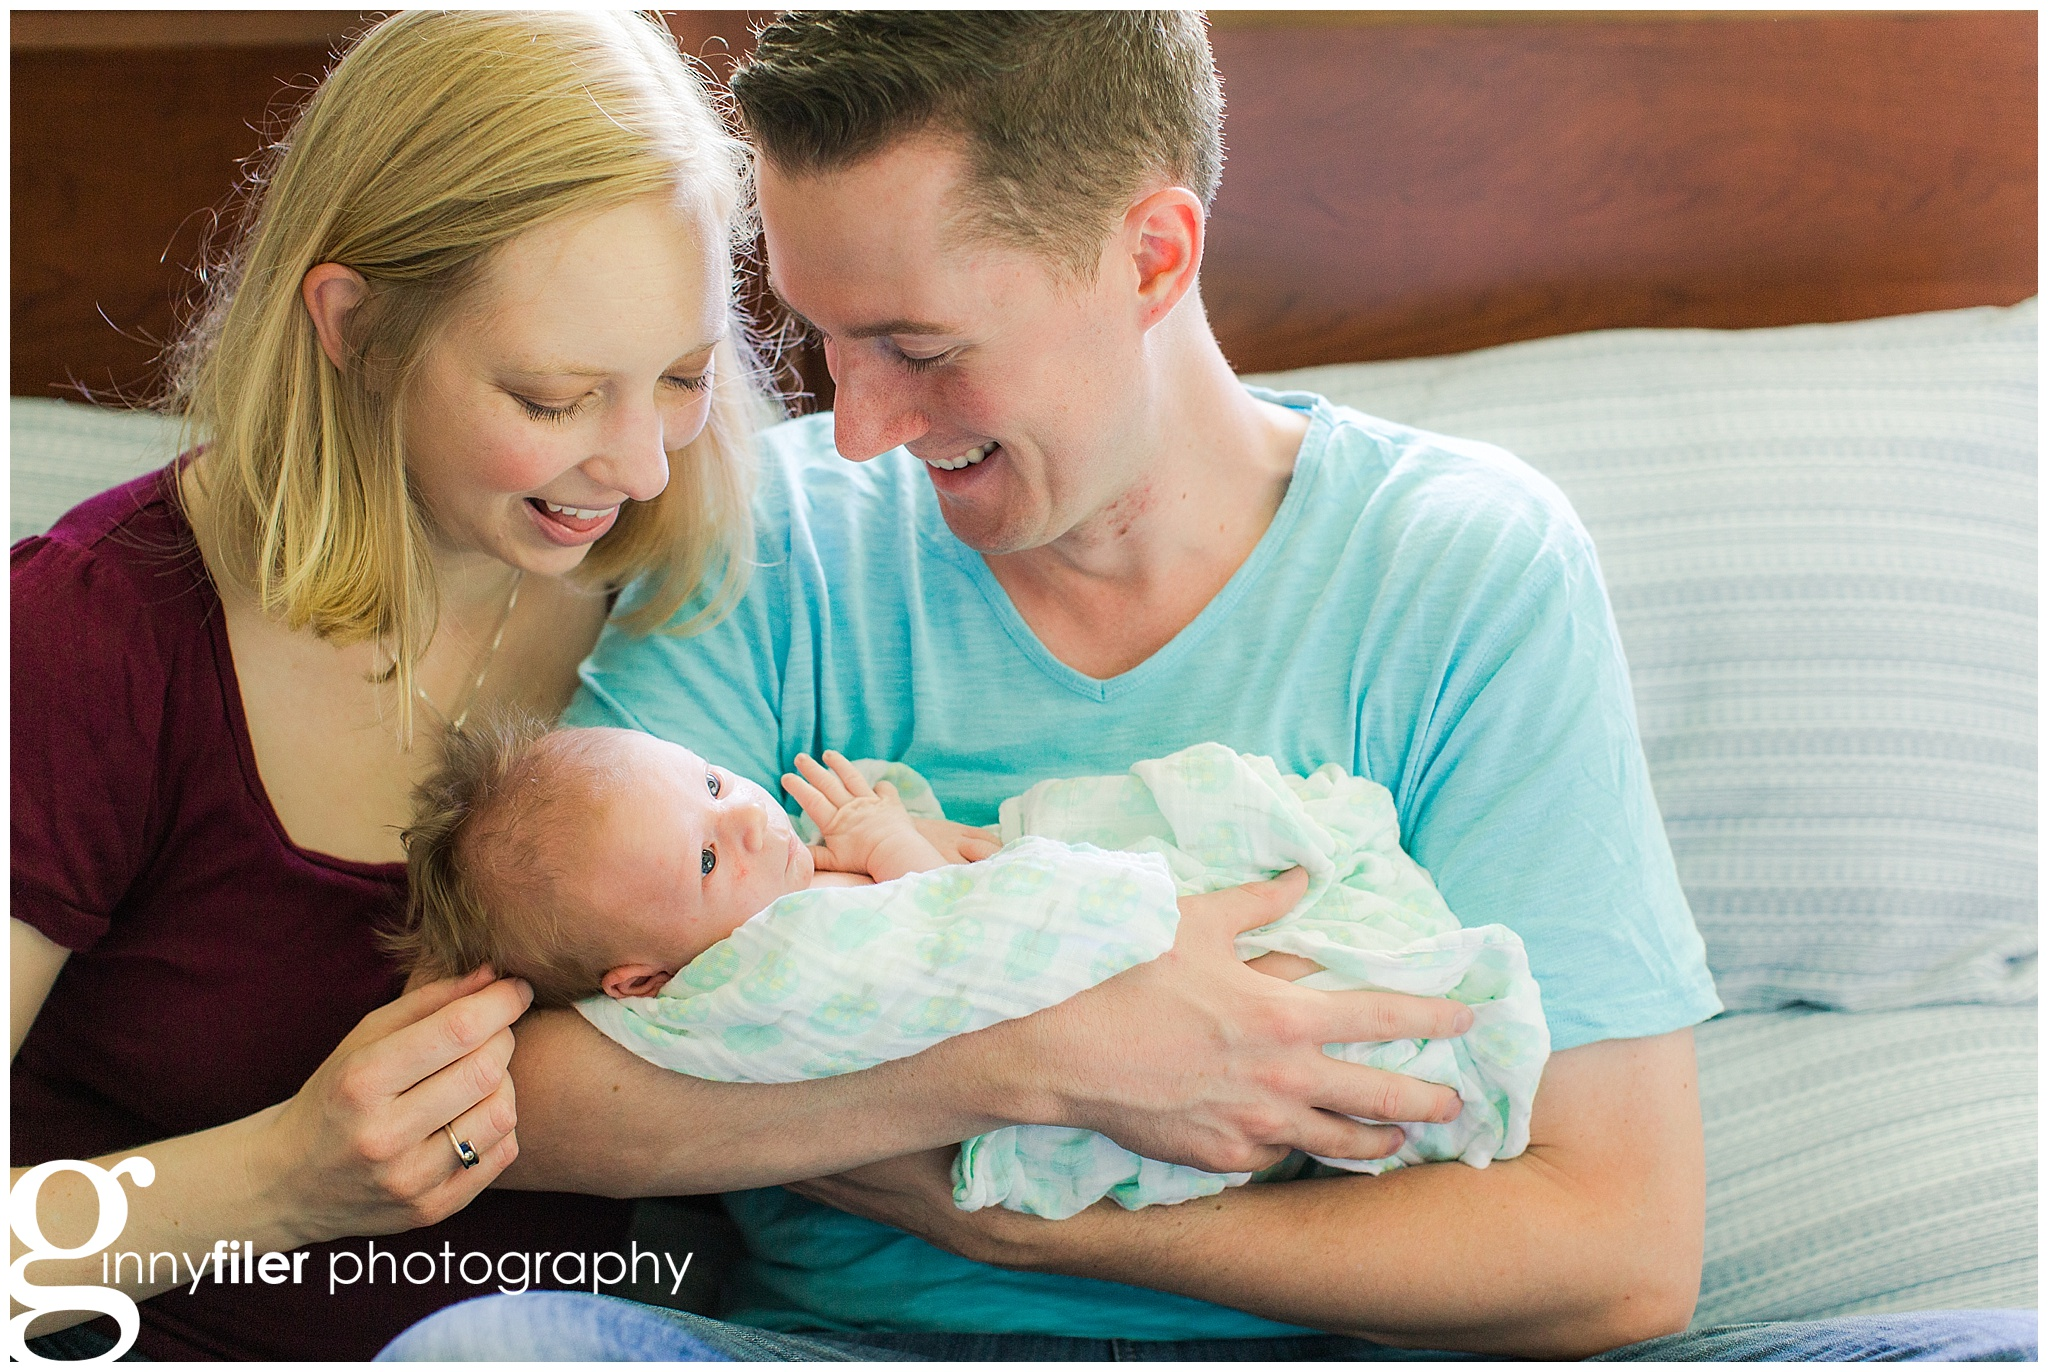 family_photography_newborn_0086.jpg